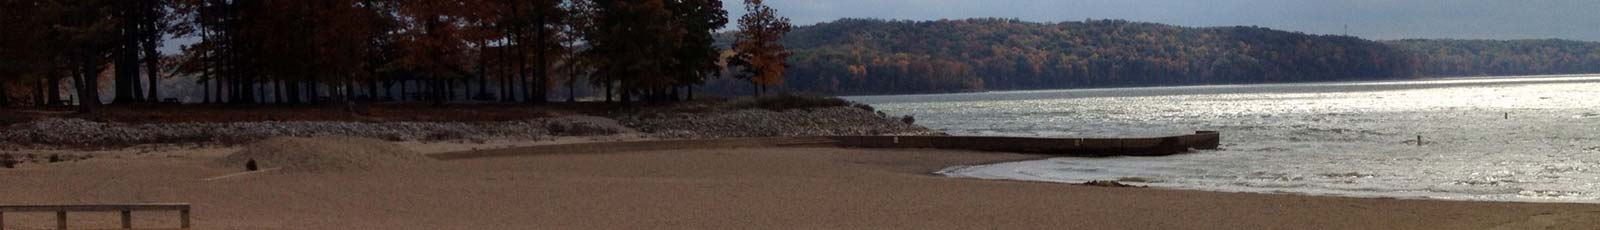 Paynetown Beach at Lake Monroe in Bloomington, Indiana